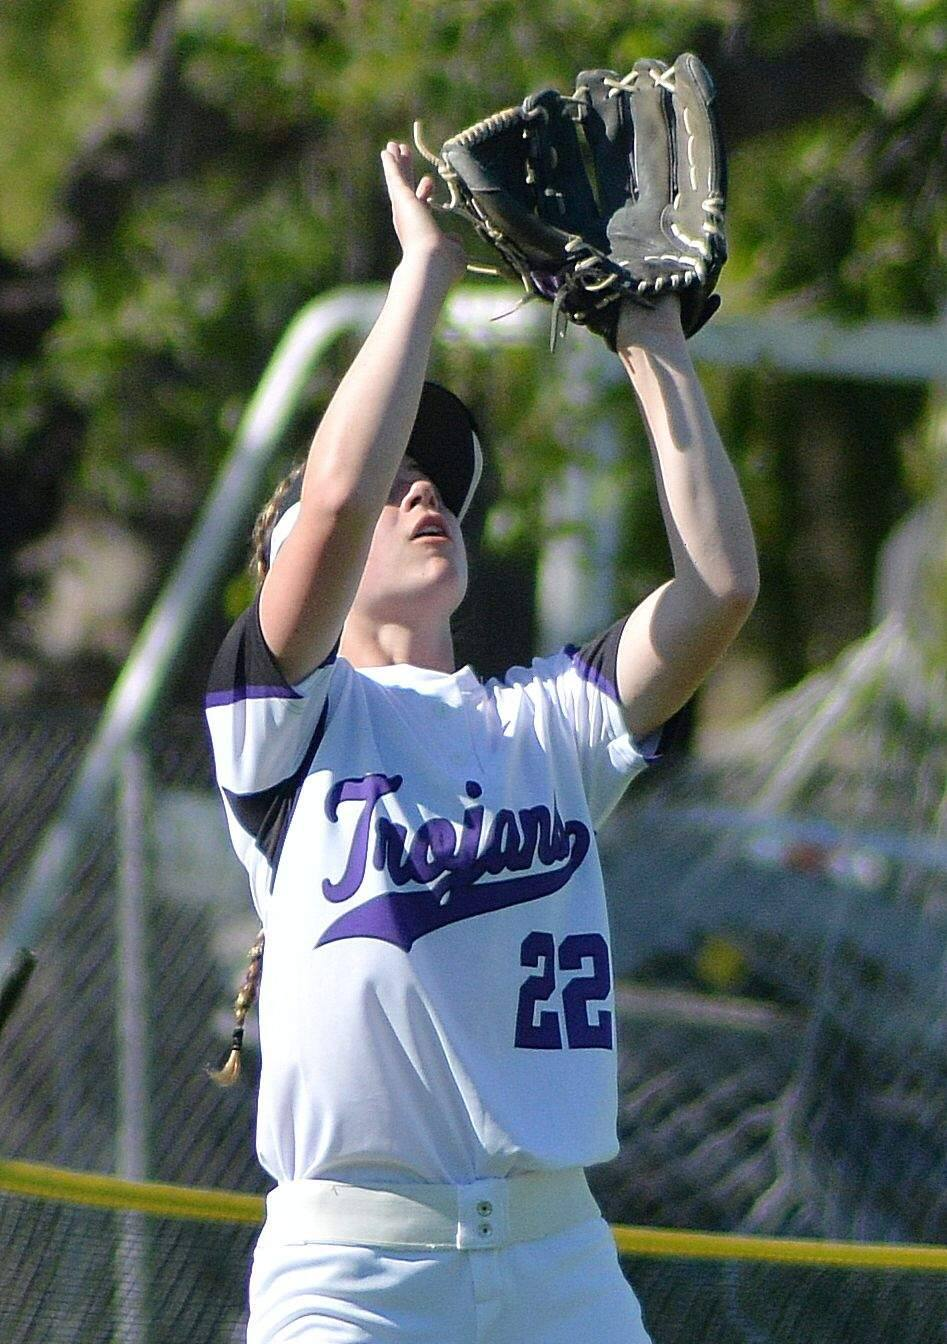 SUMNER FOWLER/FOR THE ARGUS-COURIERThe end of the line came for senior Kailegh Pate and the Petaluma T-Girls in a last-inning loss to Alhanmbra.